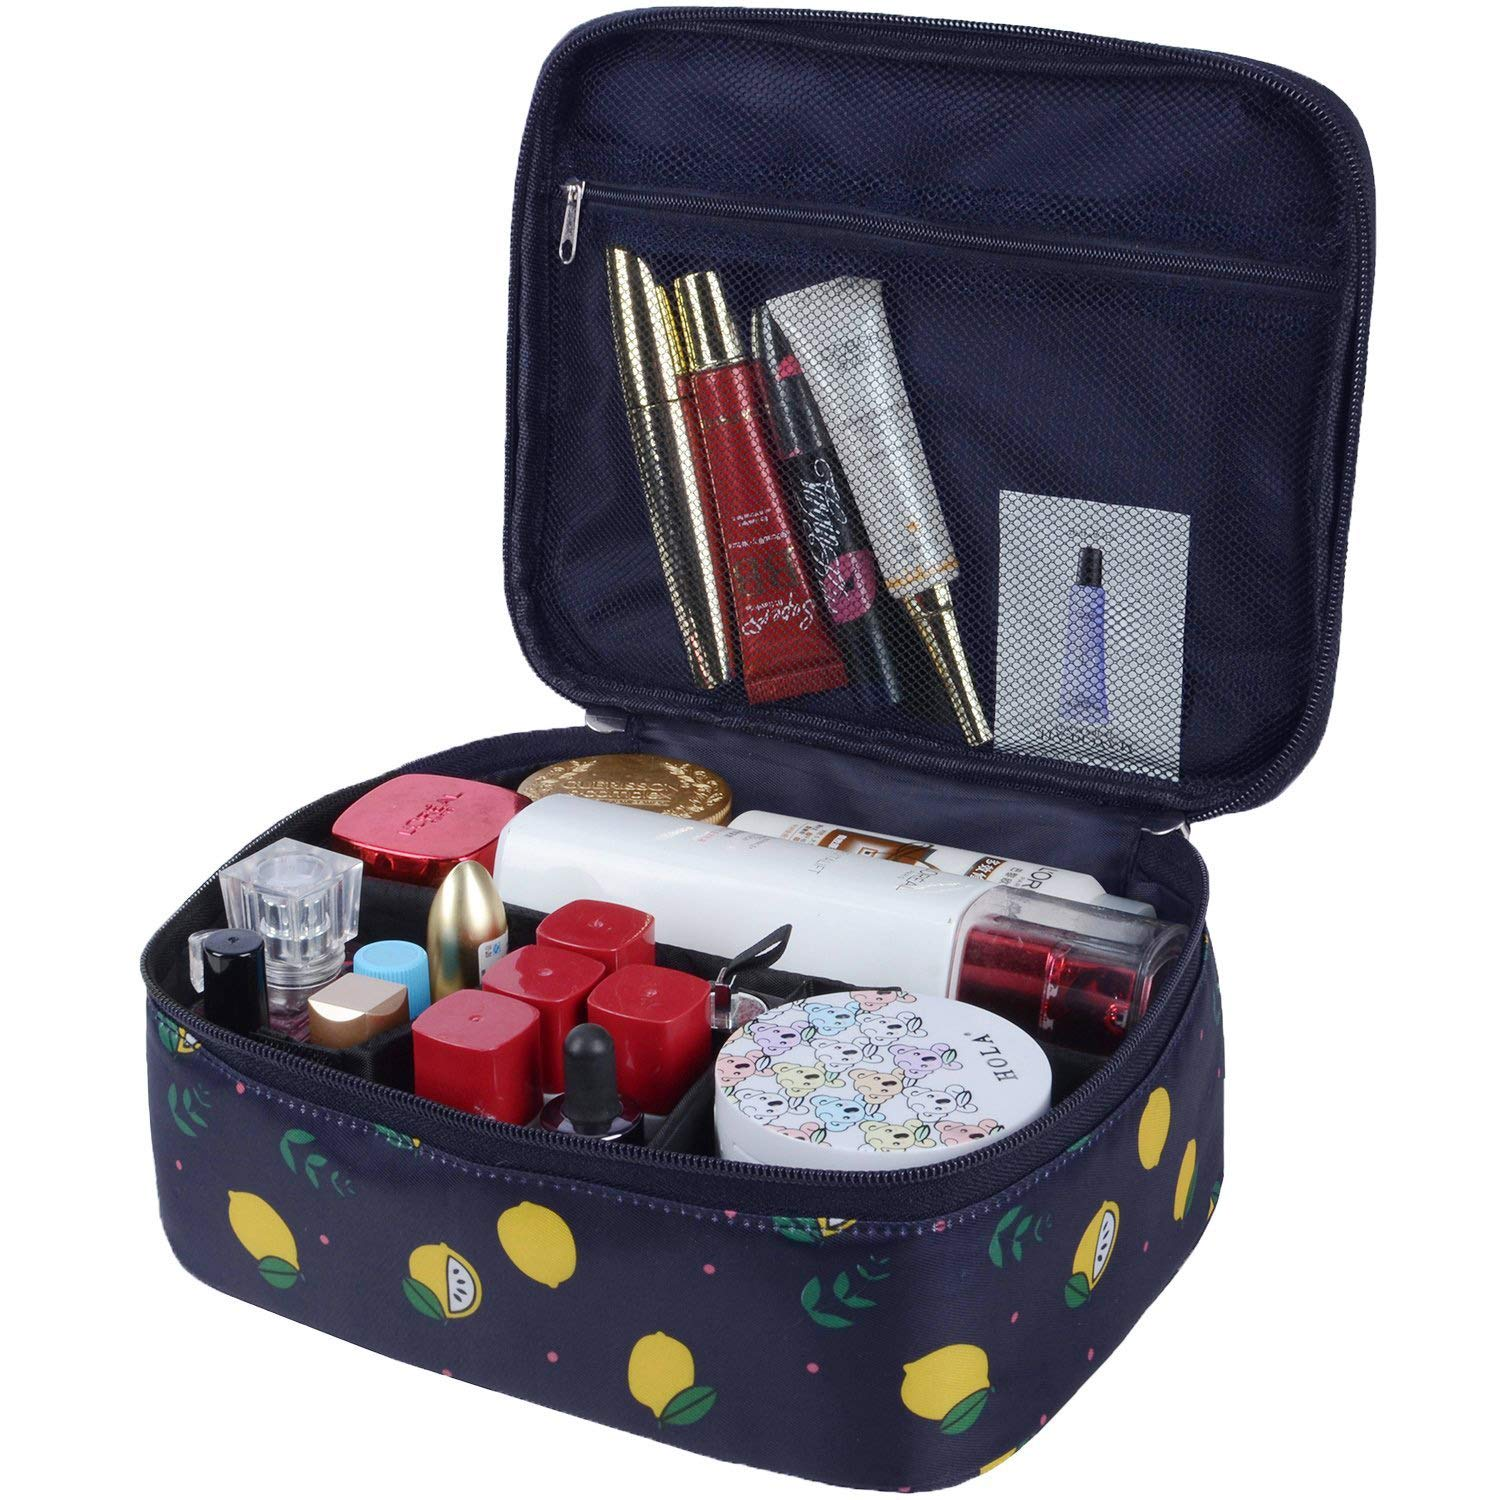 Portable Travel Makeup Cosmetic Bags Organizer Multifunction Case Toiletry Bags for Women (Color 50)